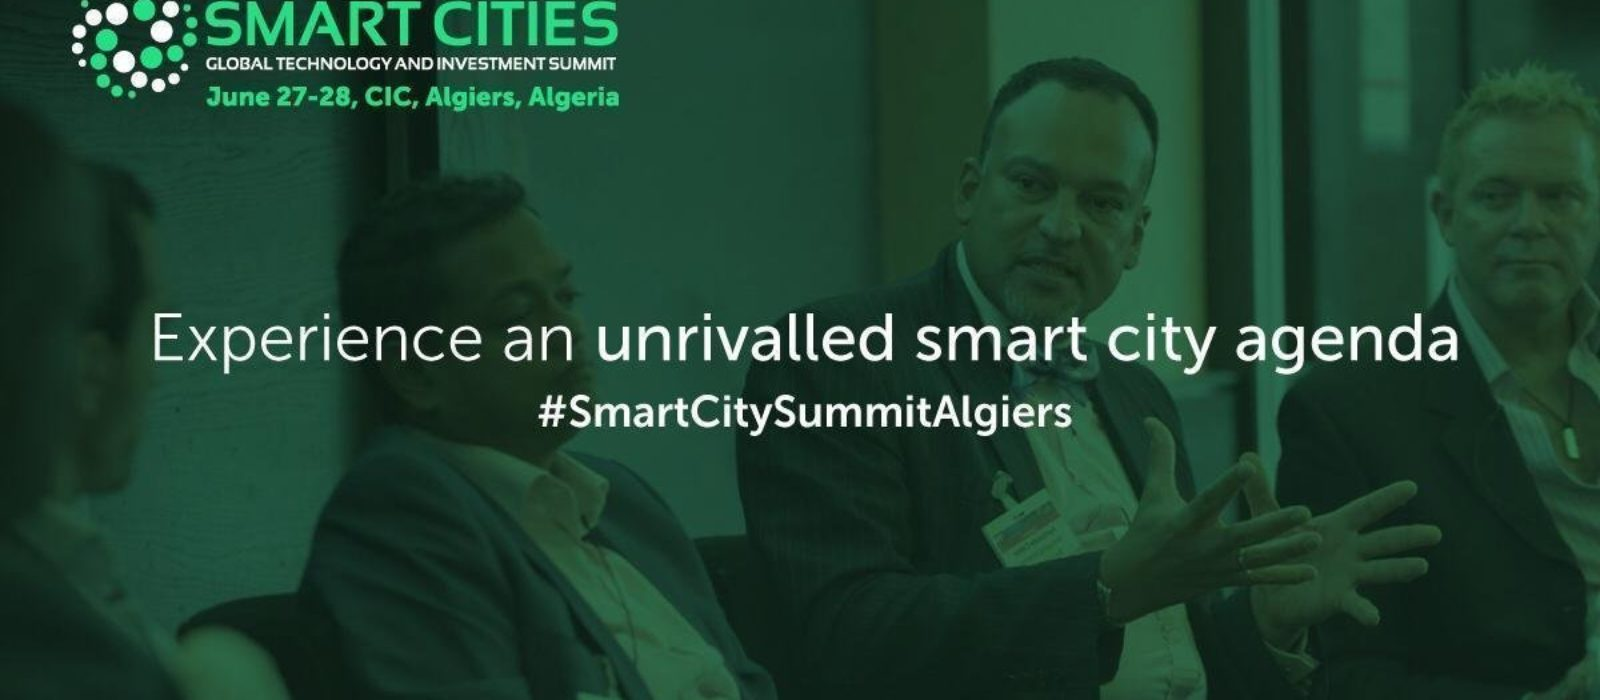 Heading to Algiers Algeria to attend and speak at the first Smart City summit in Algeria